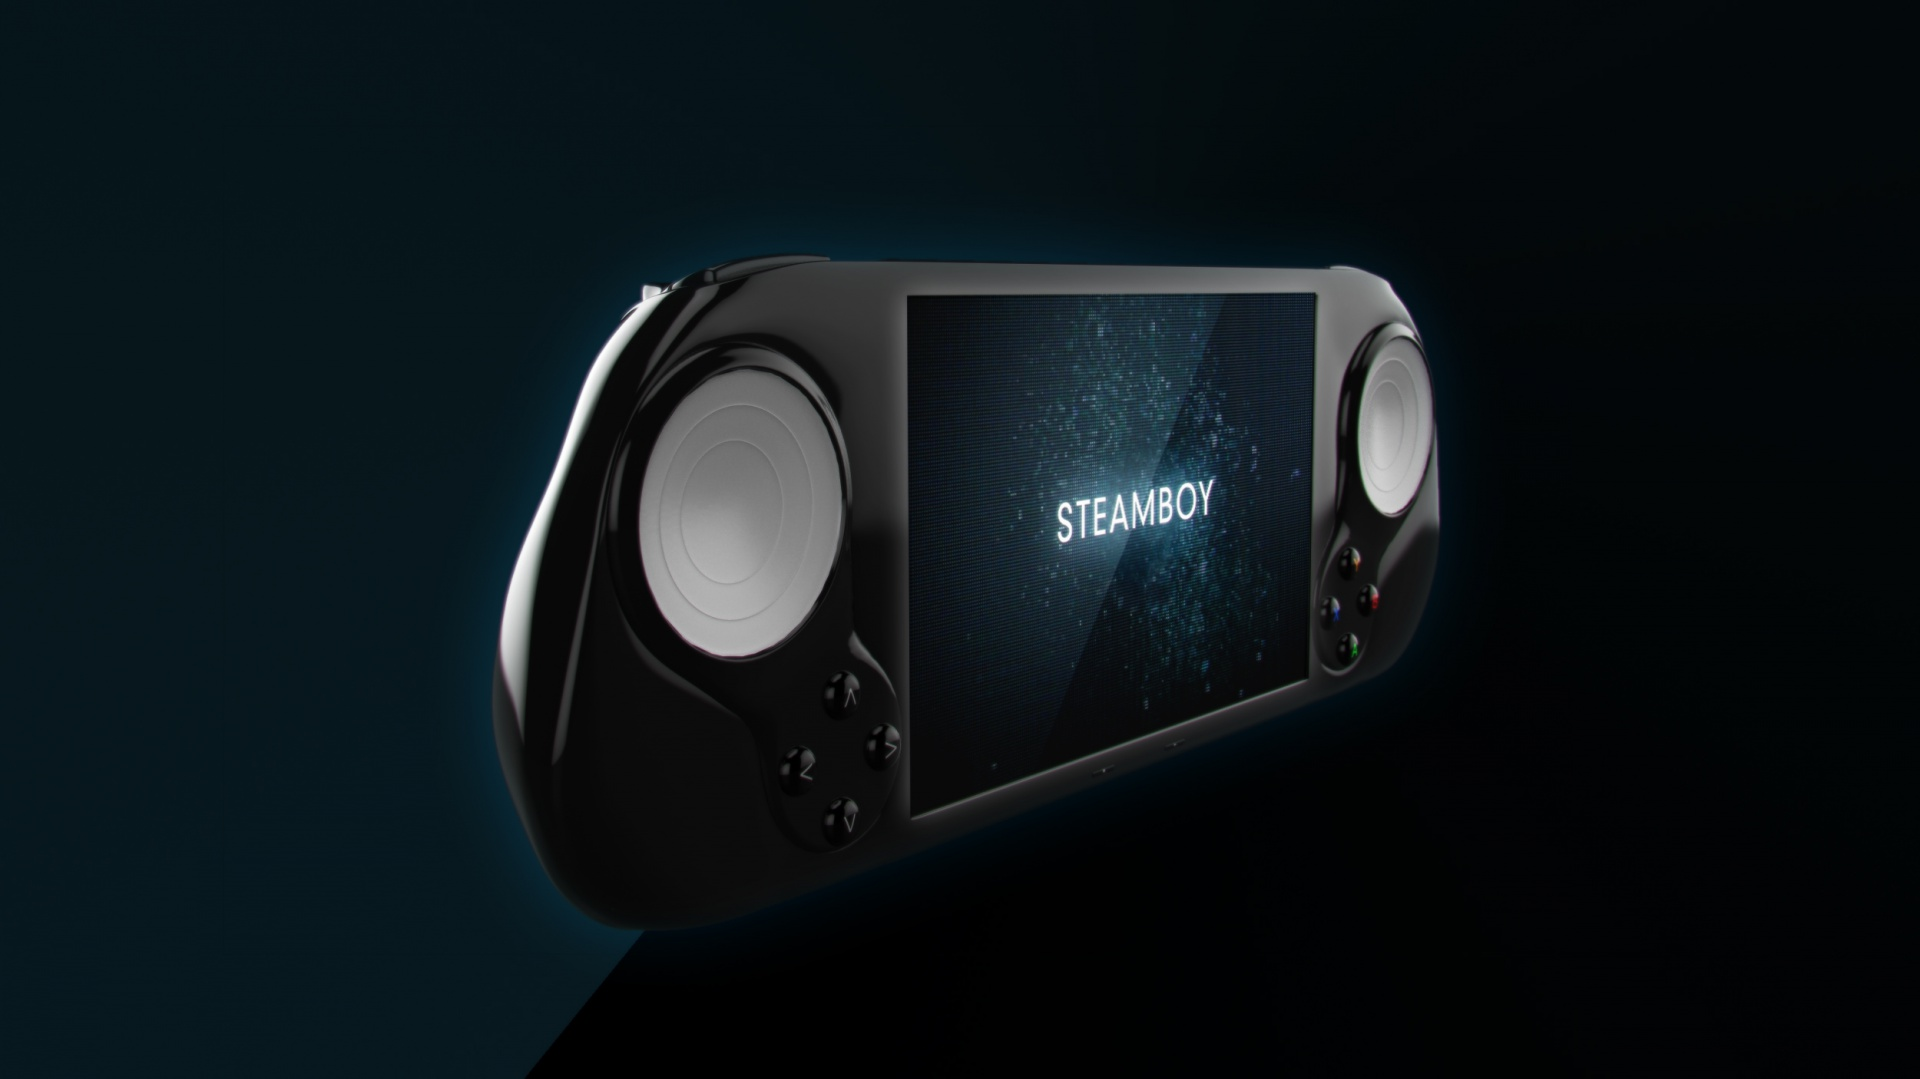 SteamBoy Aims To Be The Handheld Steam Machine - Update